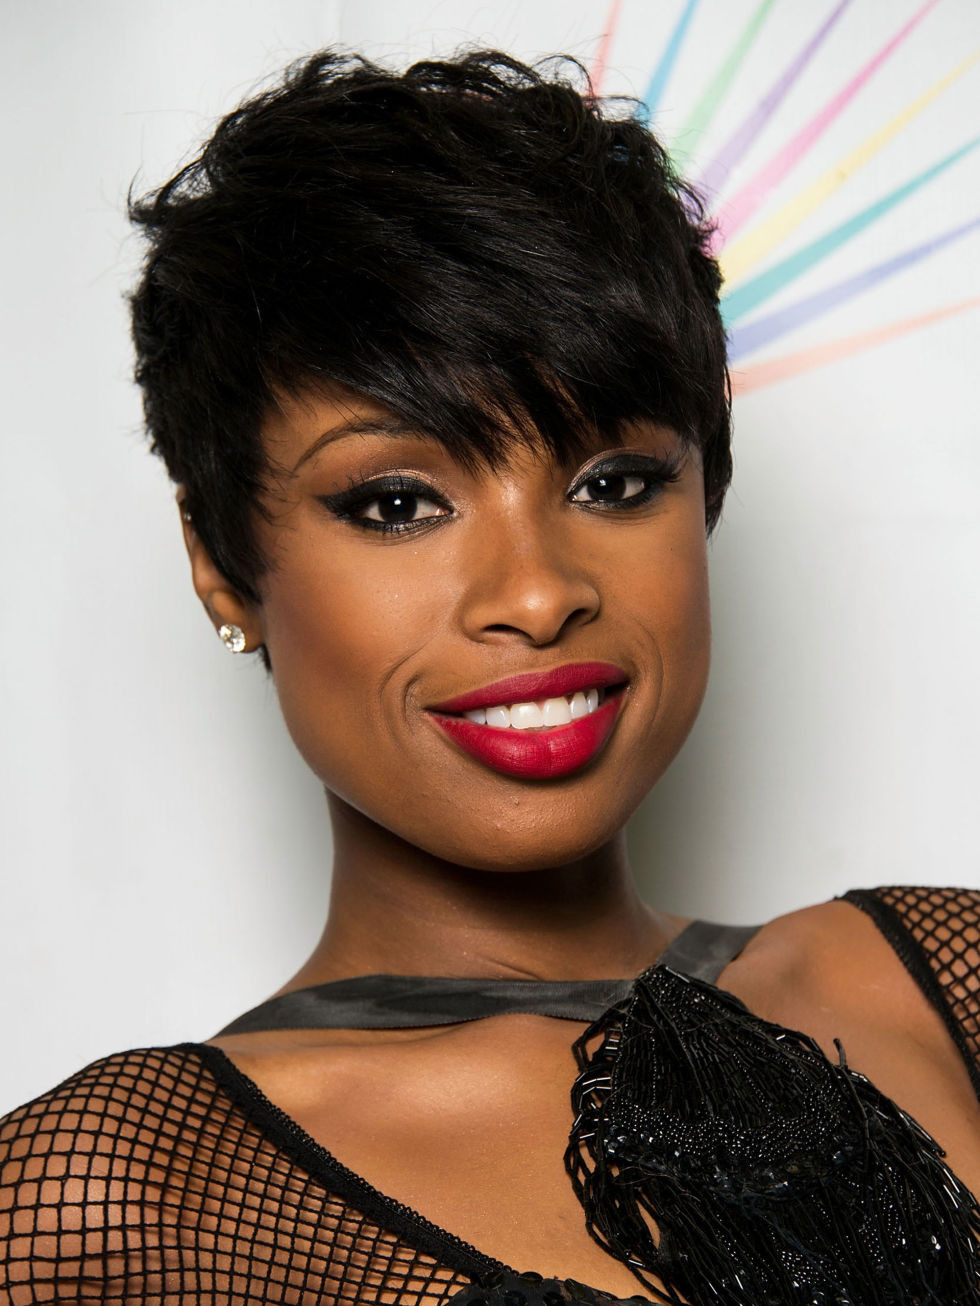 Hairstyles Black Women  70 Best Short Hairstyles for Black Women with Thin Hair